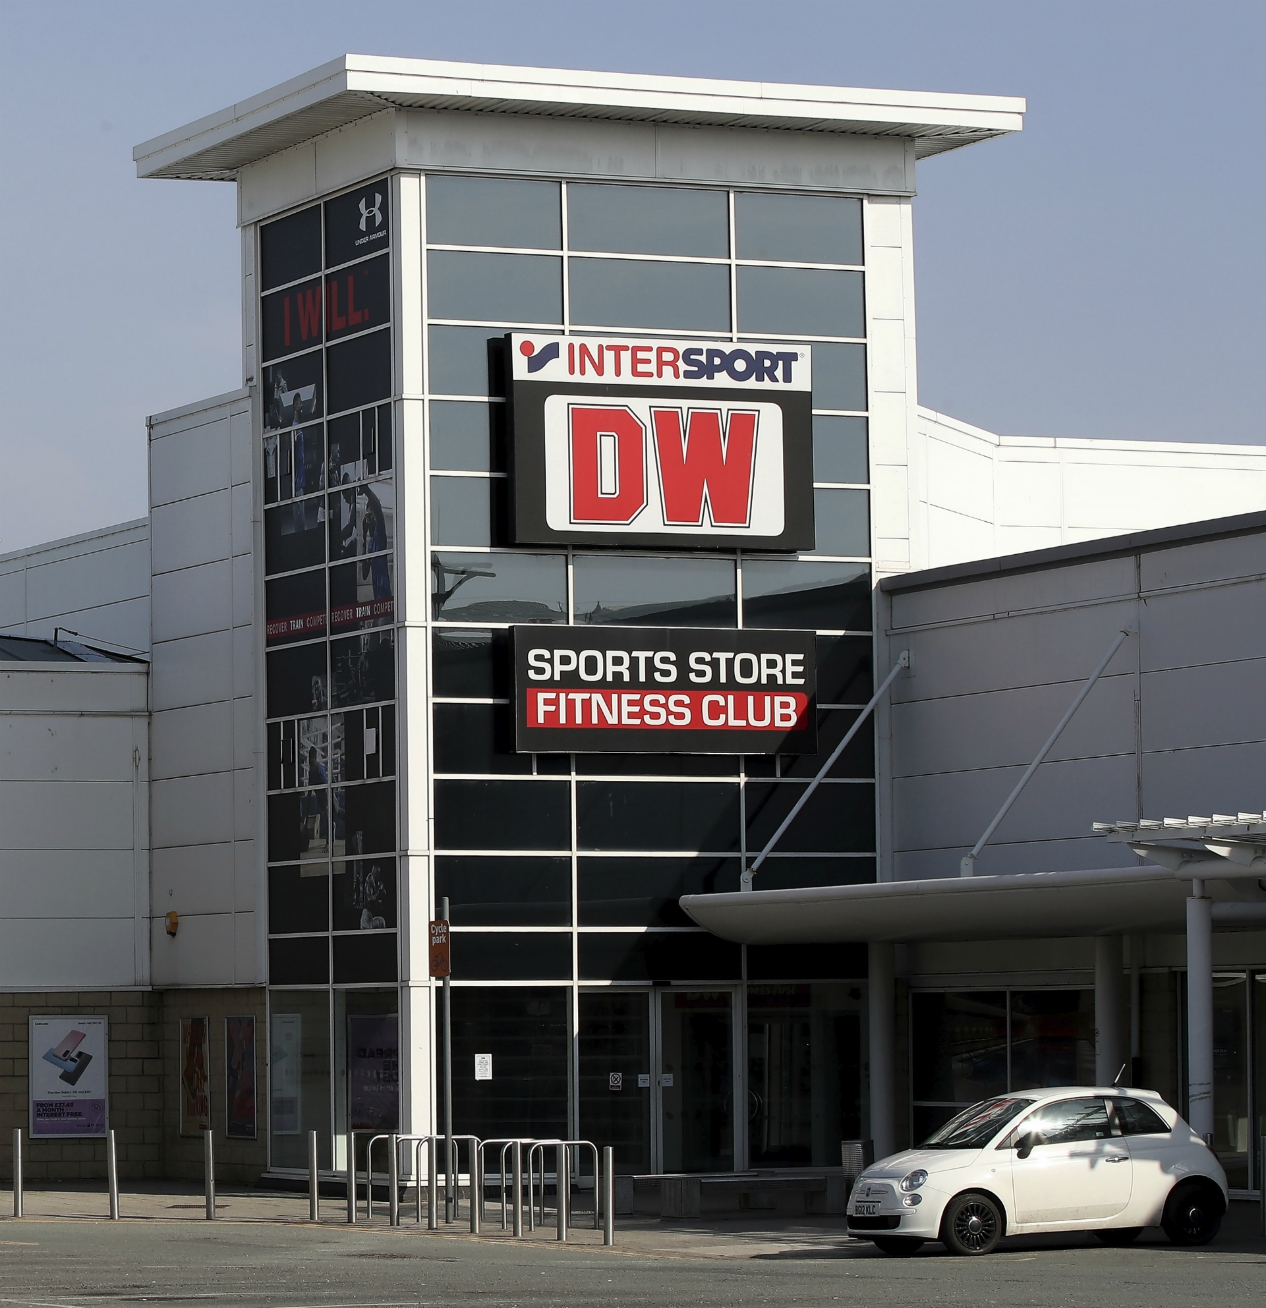 Frasers Group acquires 71 locations of bankrupt sports club competitor DW Sports to add to its existing gym and retail portfolio.